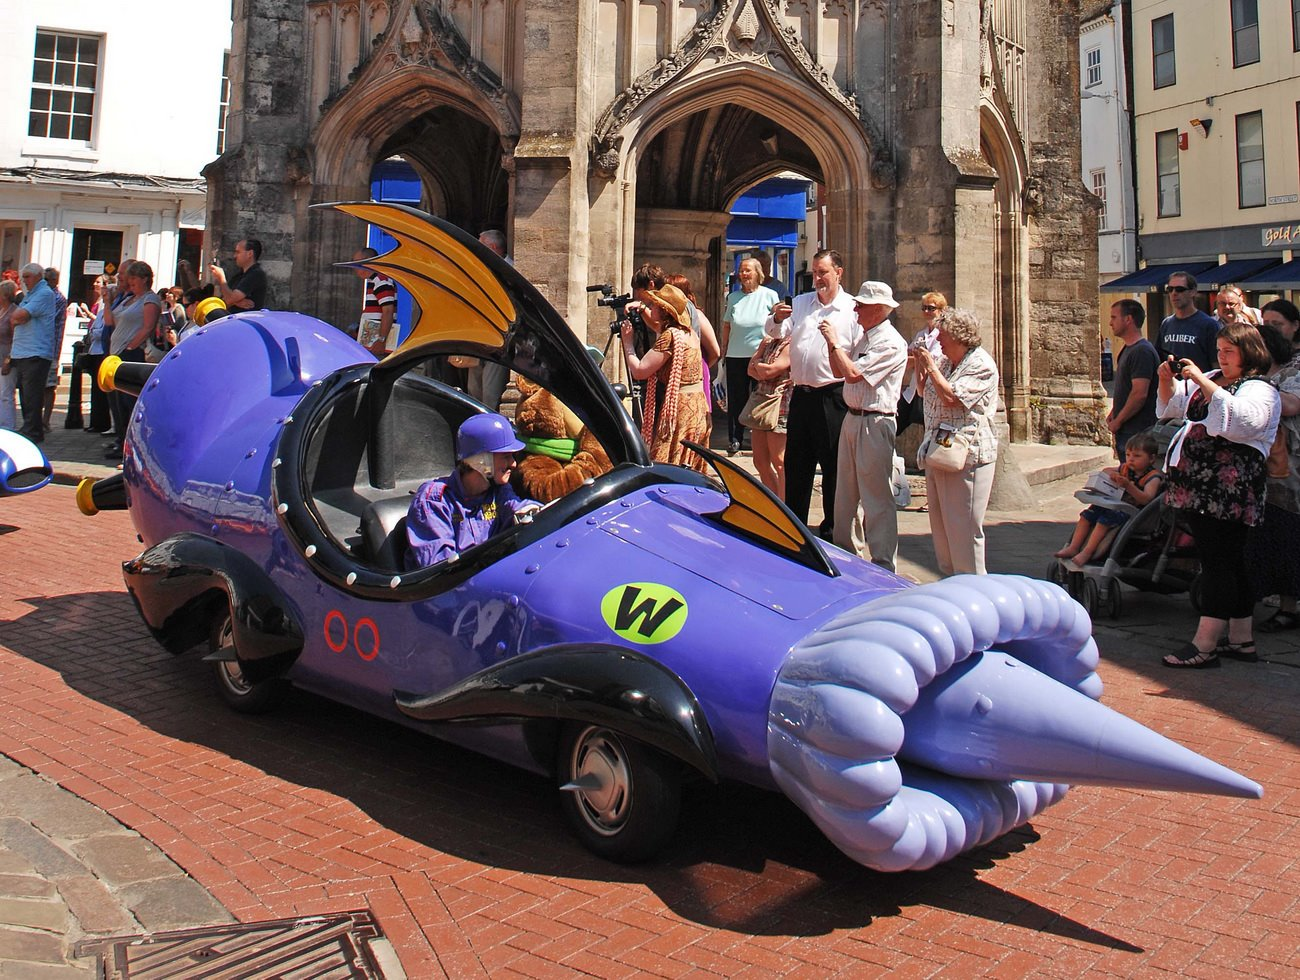 HannaBarbera39;s Wacky Races Cartoon Cars Come to Life in Britain